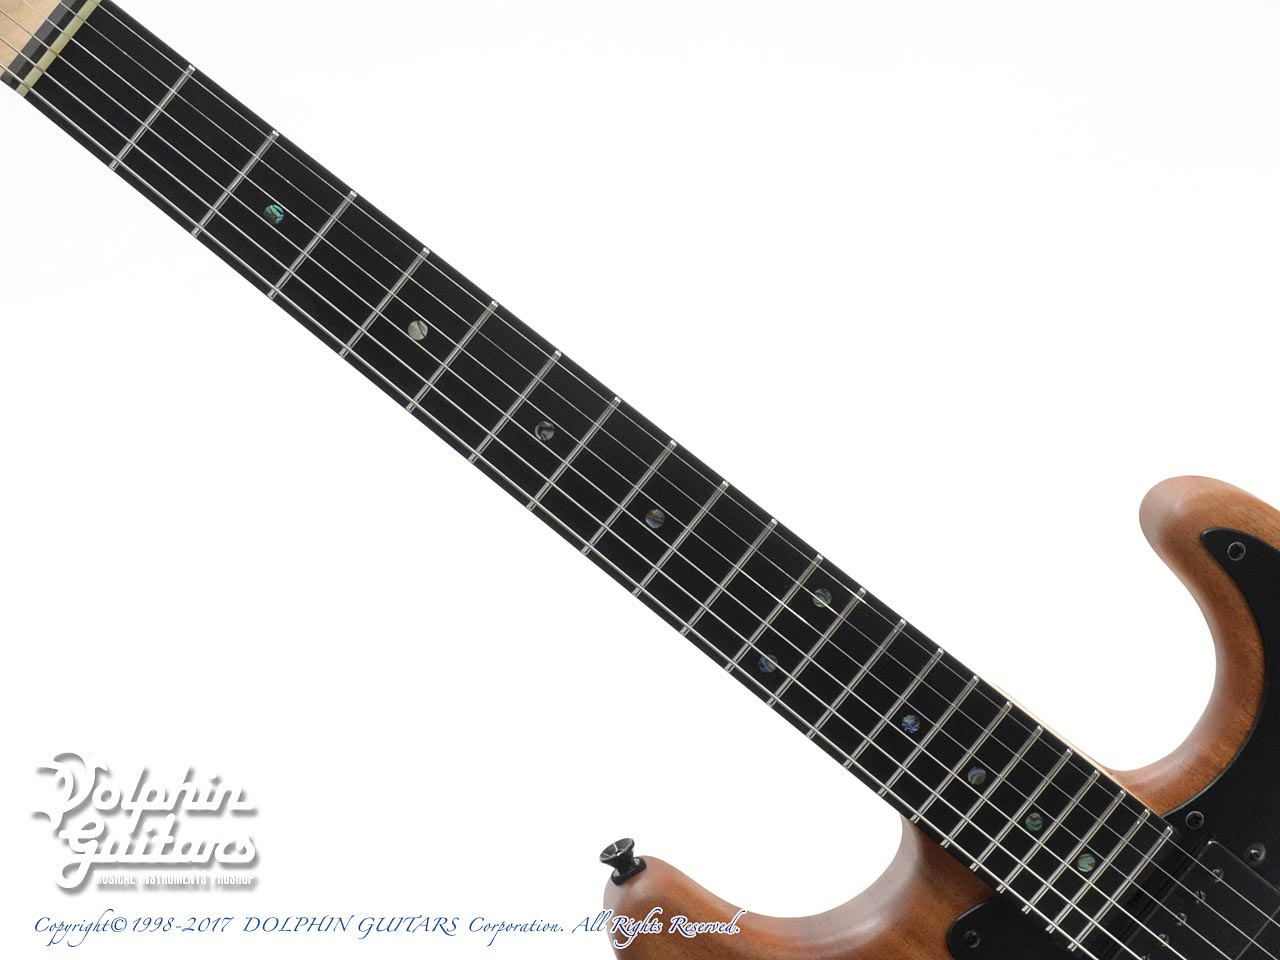 dragonfly: HI STA 22 FULL SIZE H-S-H Maple Neck (African Mahogany) (5)